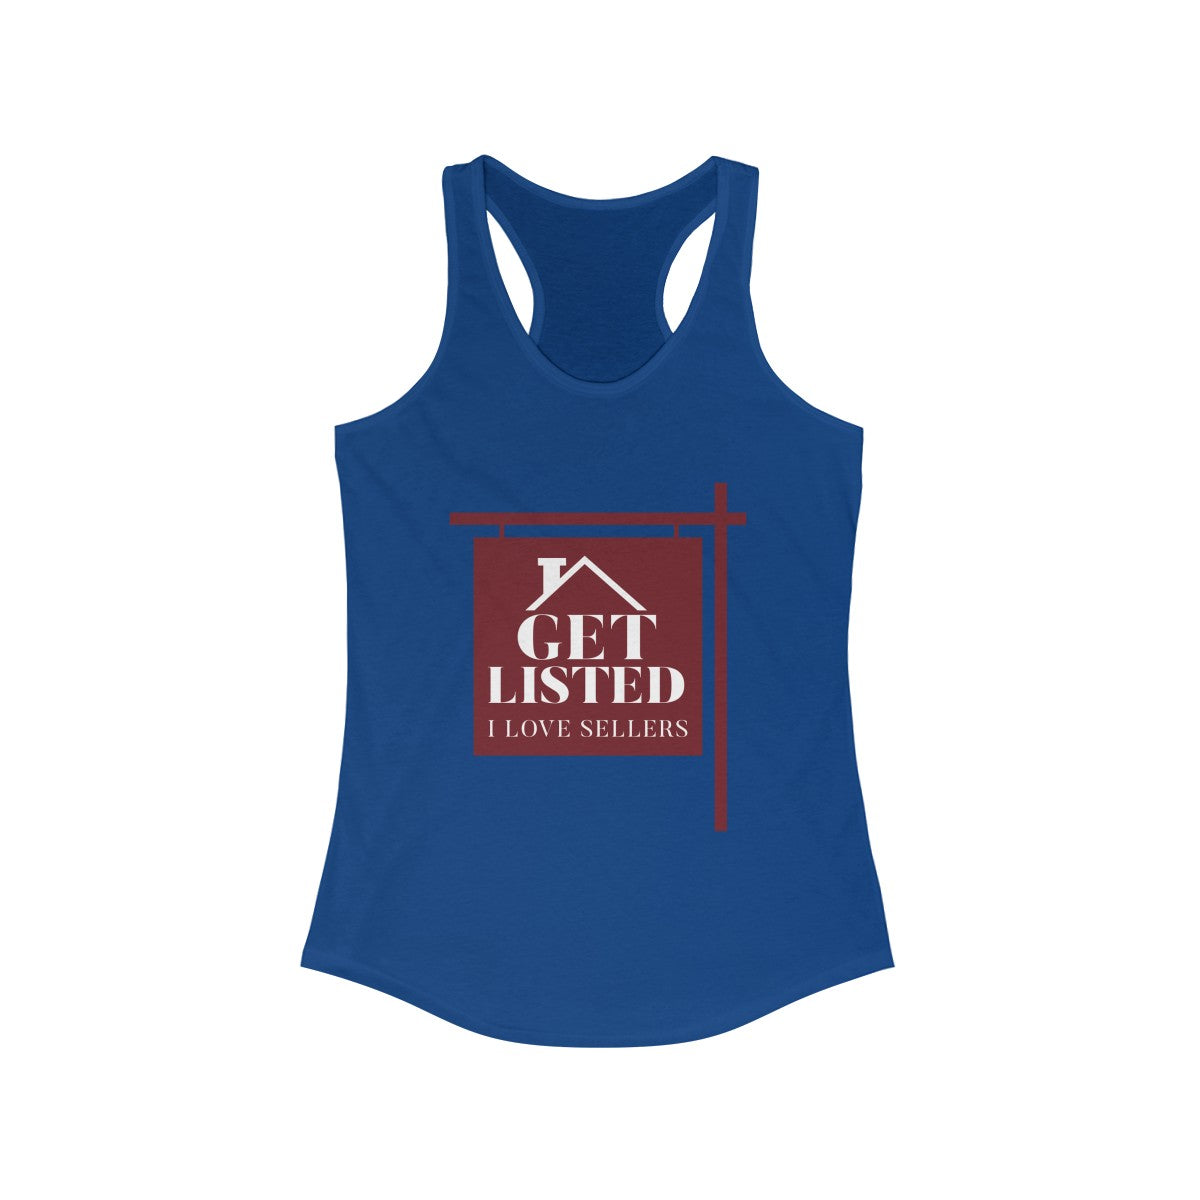 Get Listed! I Love Sellers Women's Ideal Racerback Tank